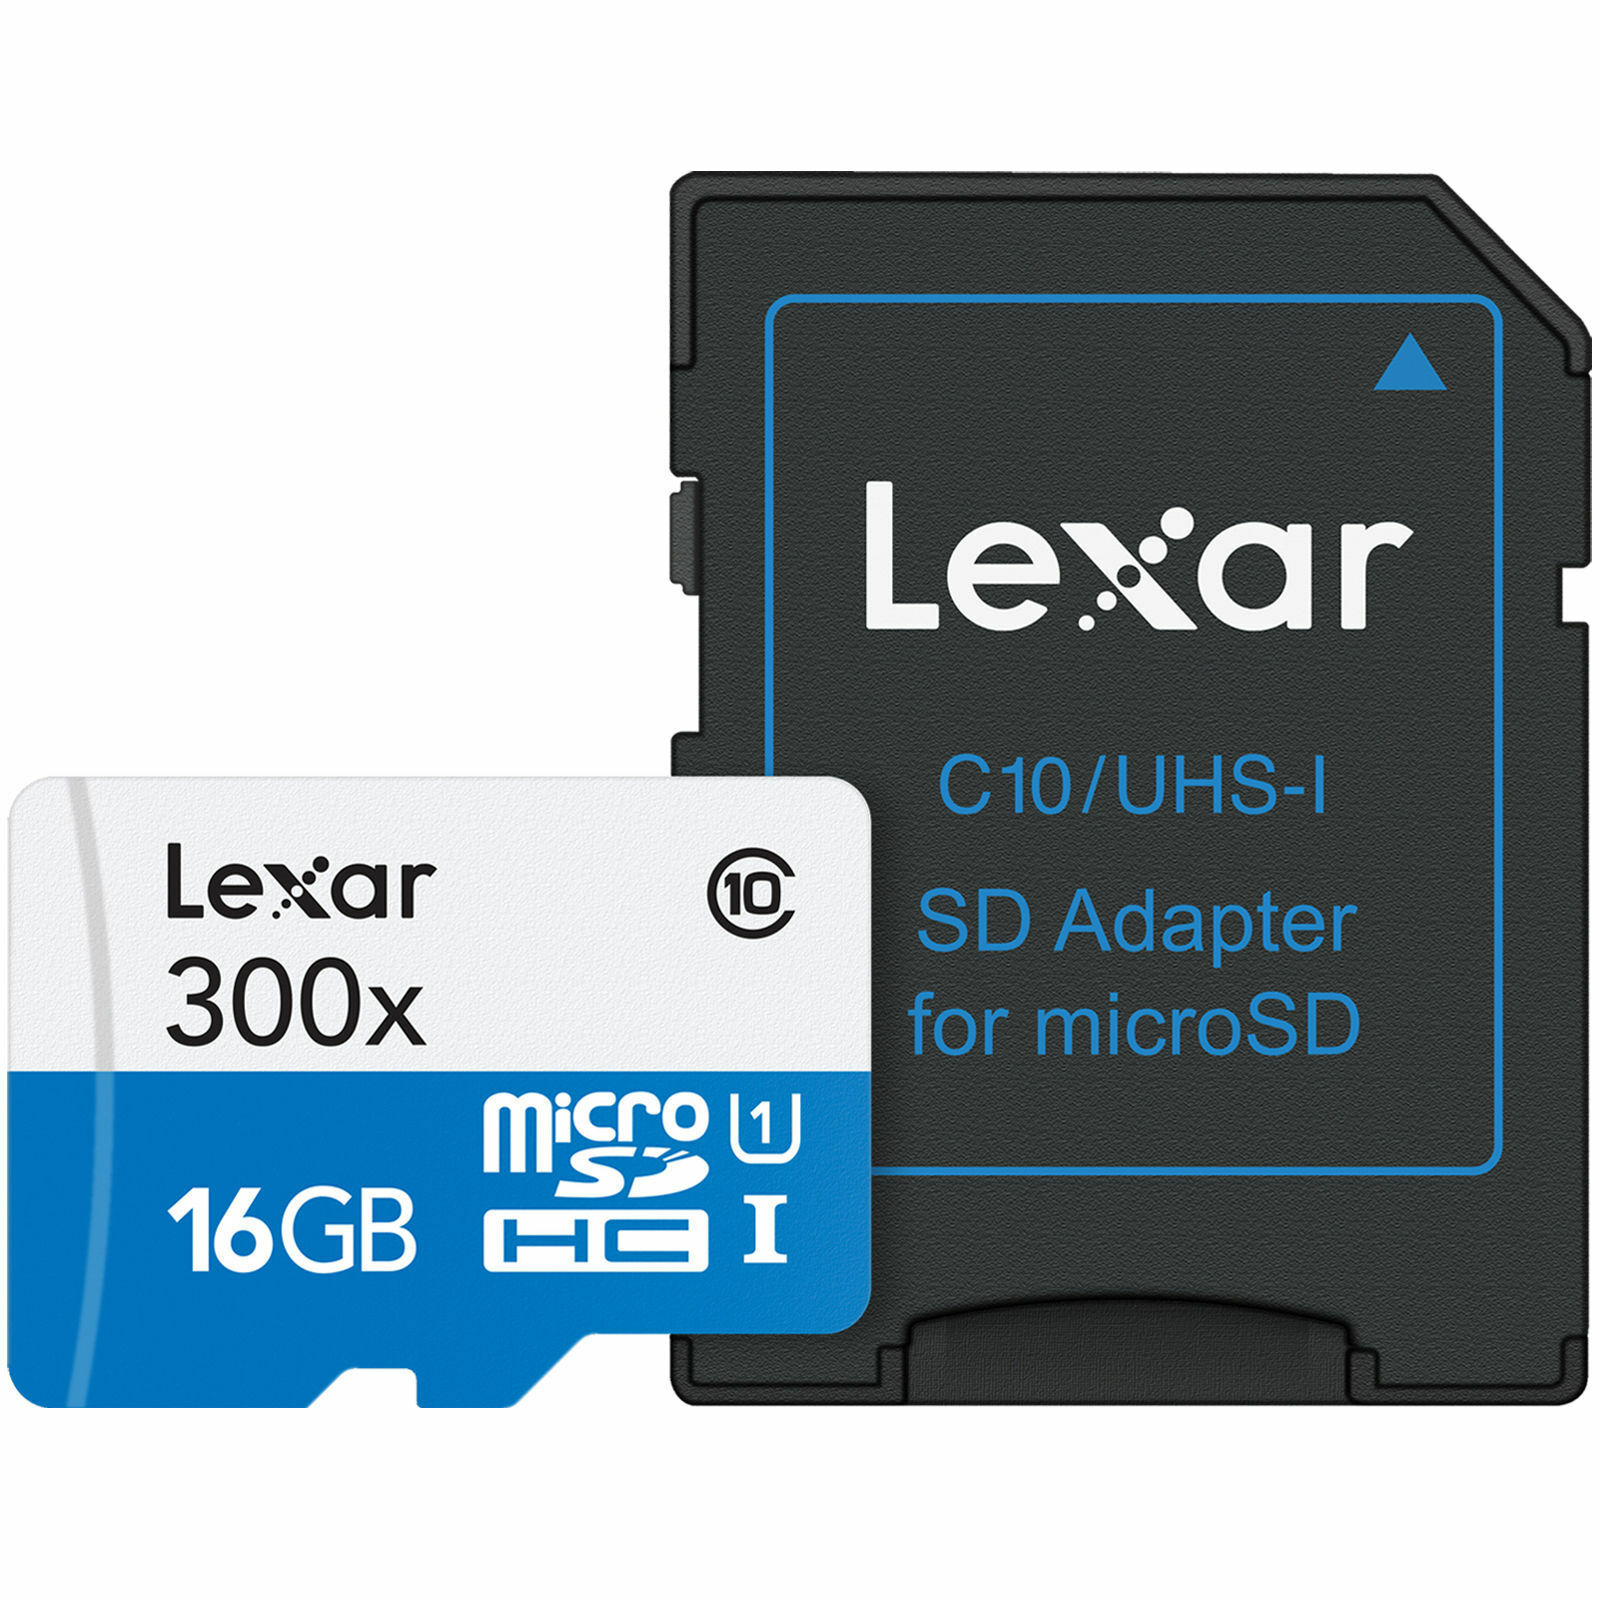 Lexar 16gb 300x Microsdhc Micro Sdhc Sd Tf Memory Card Uhs I Class Toshiba Exceria Sdxc 10 48mb S 64gb Norton Secured Powered By Verisign